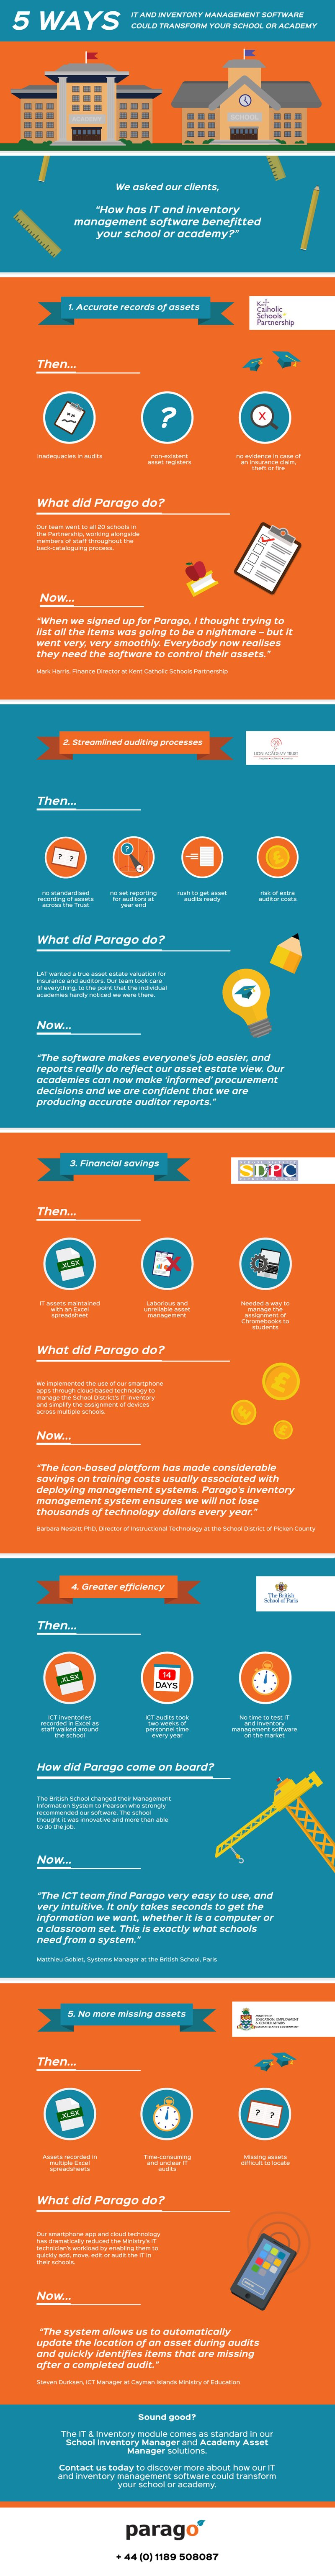 parago 5 ways infographic